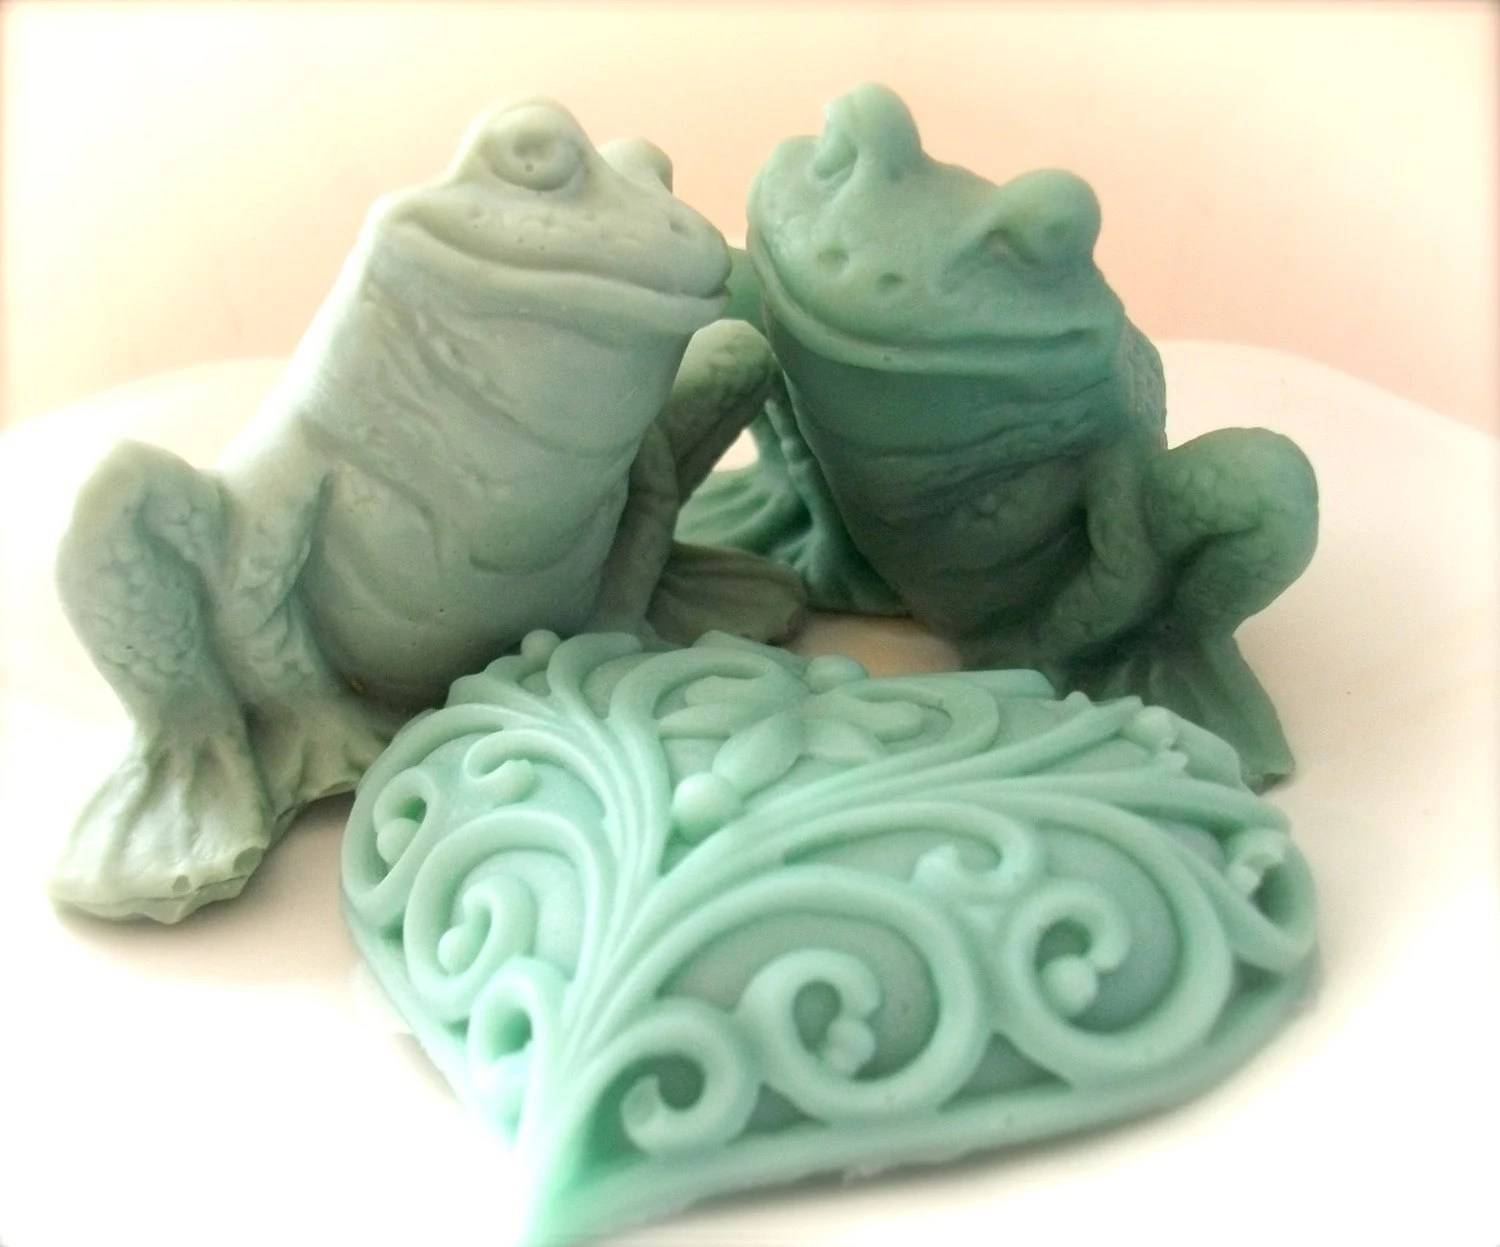 SOAP, Frog Soap Set, Moisturizing Vegetable Based, Two Frogs in Love, Scented in Peaches and Cream - thecharmingfrog